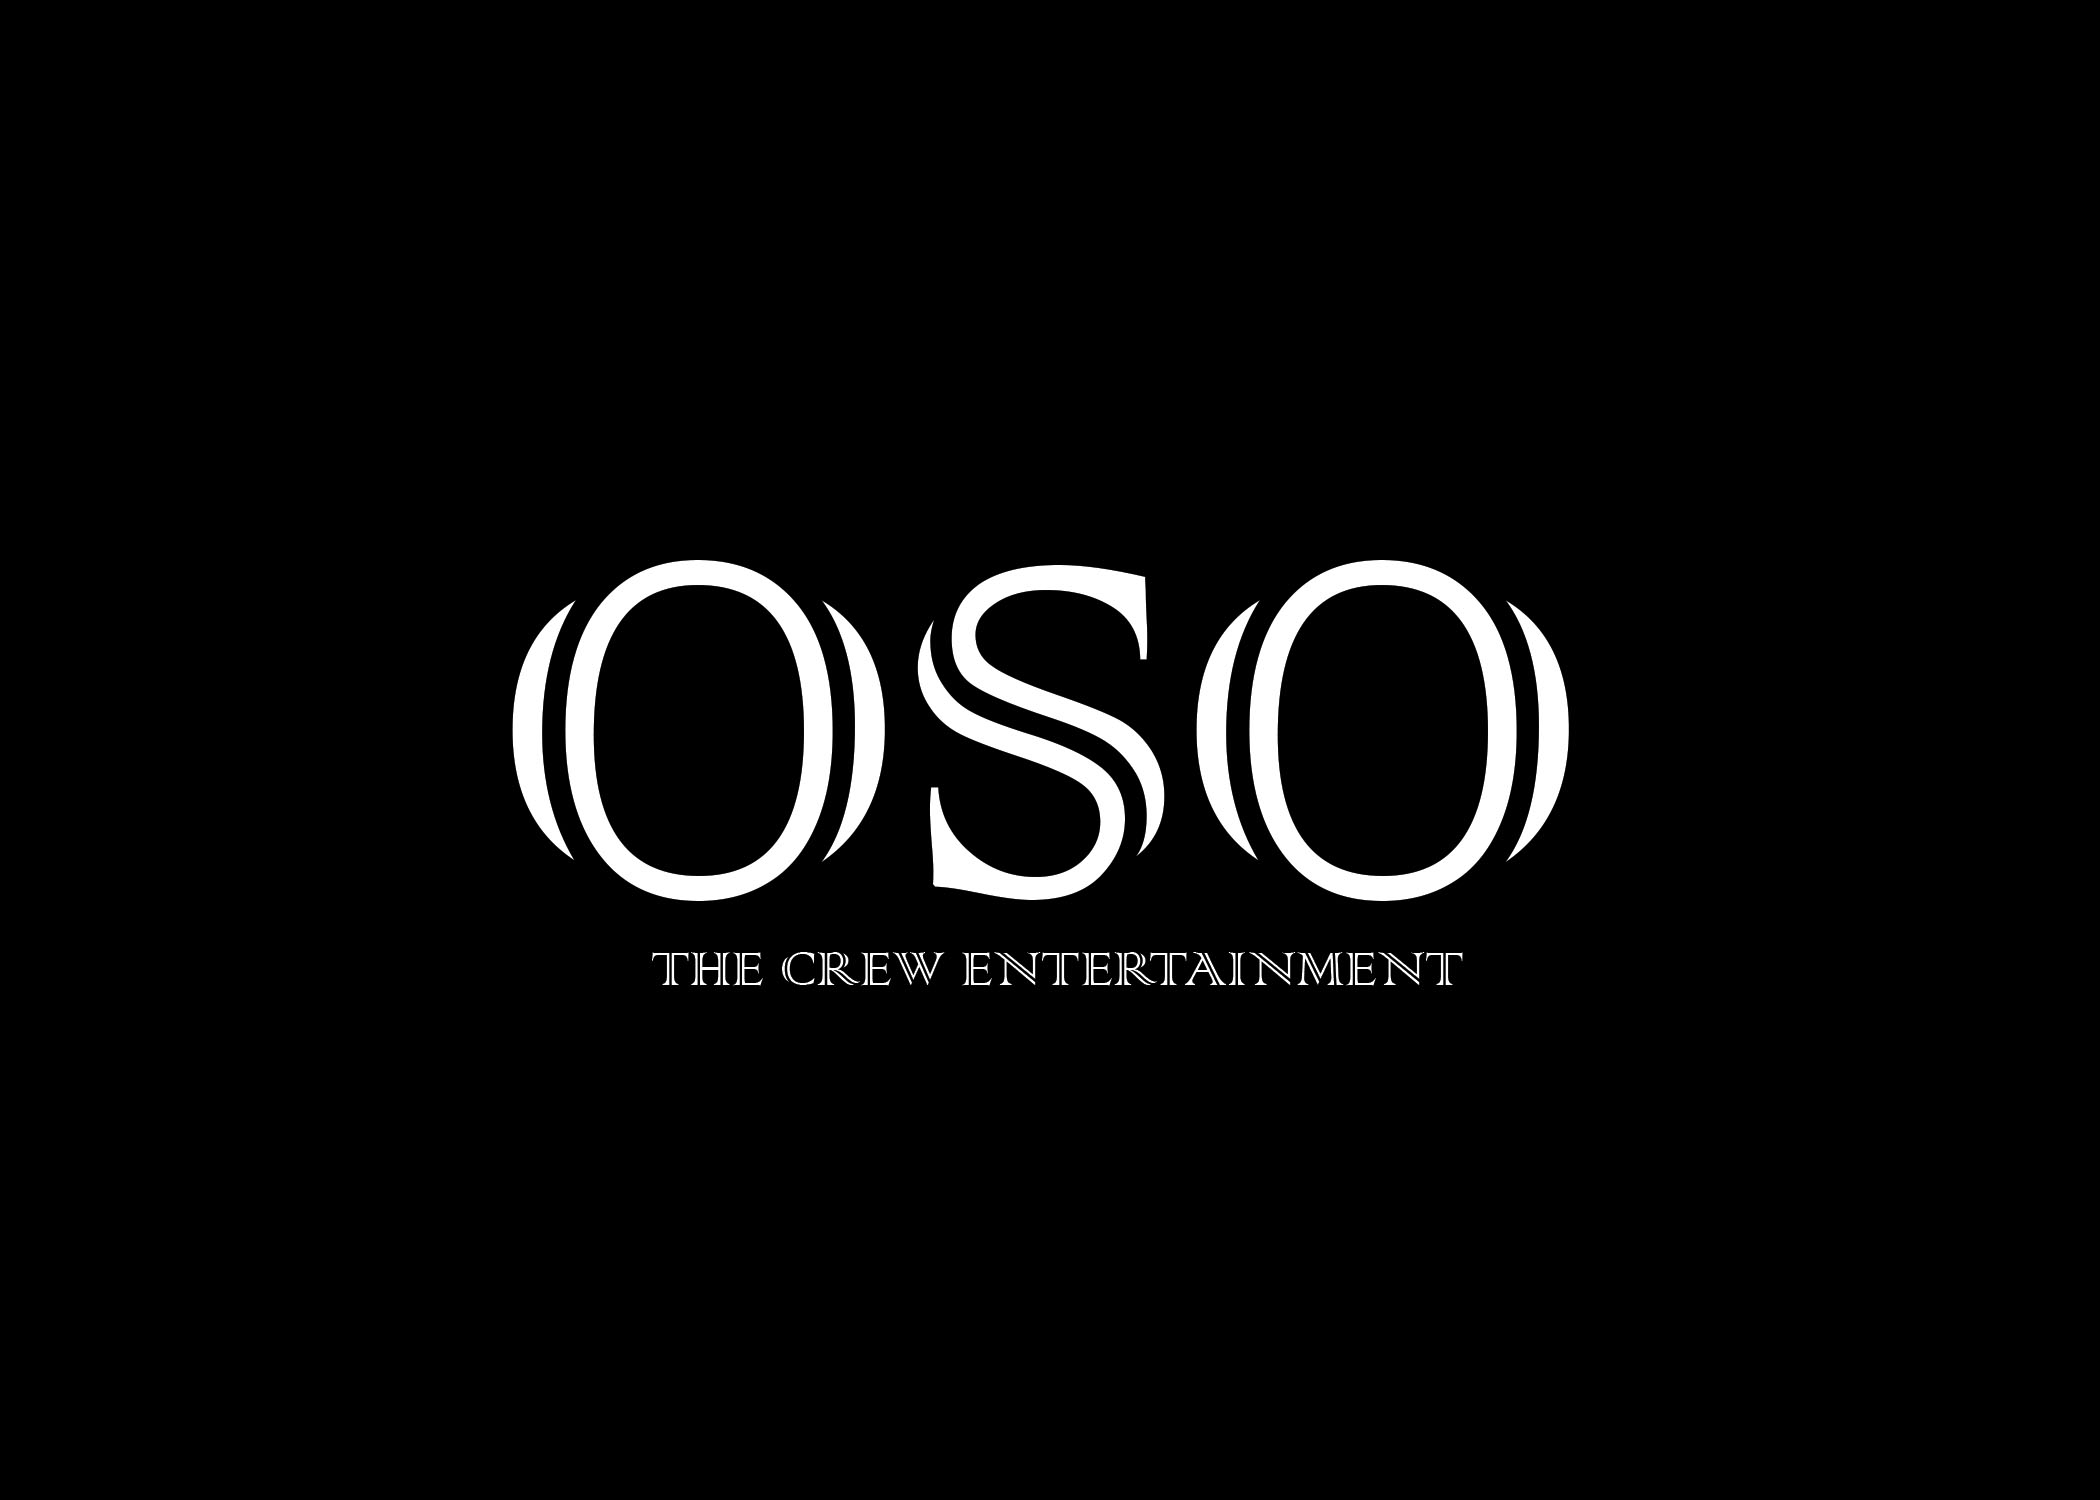 Osothecrew entertainment